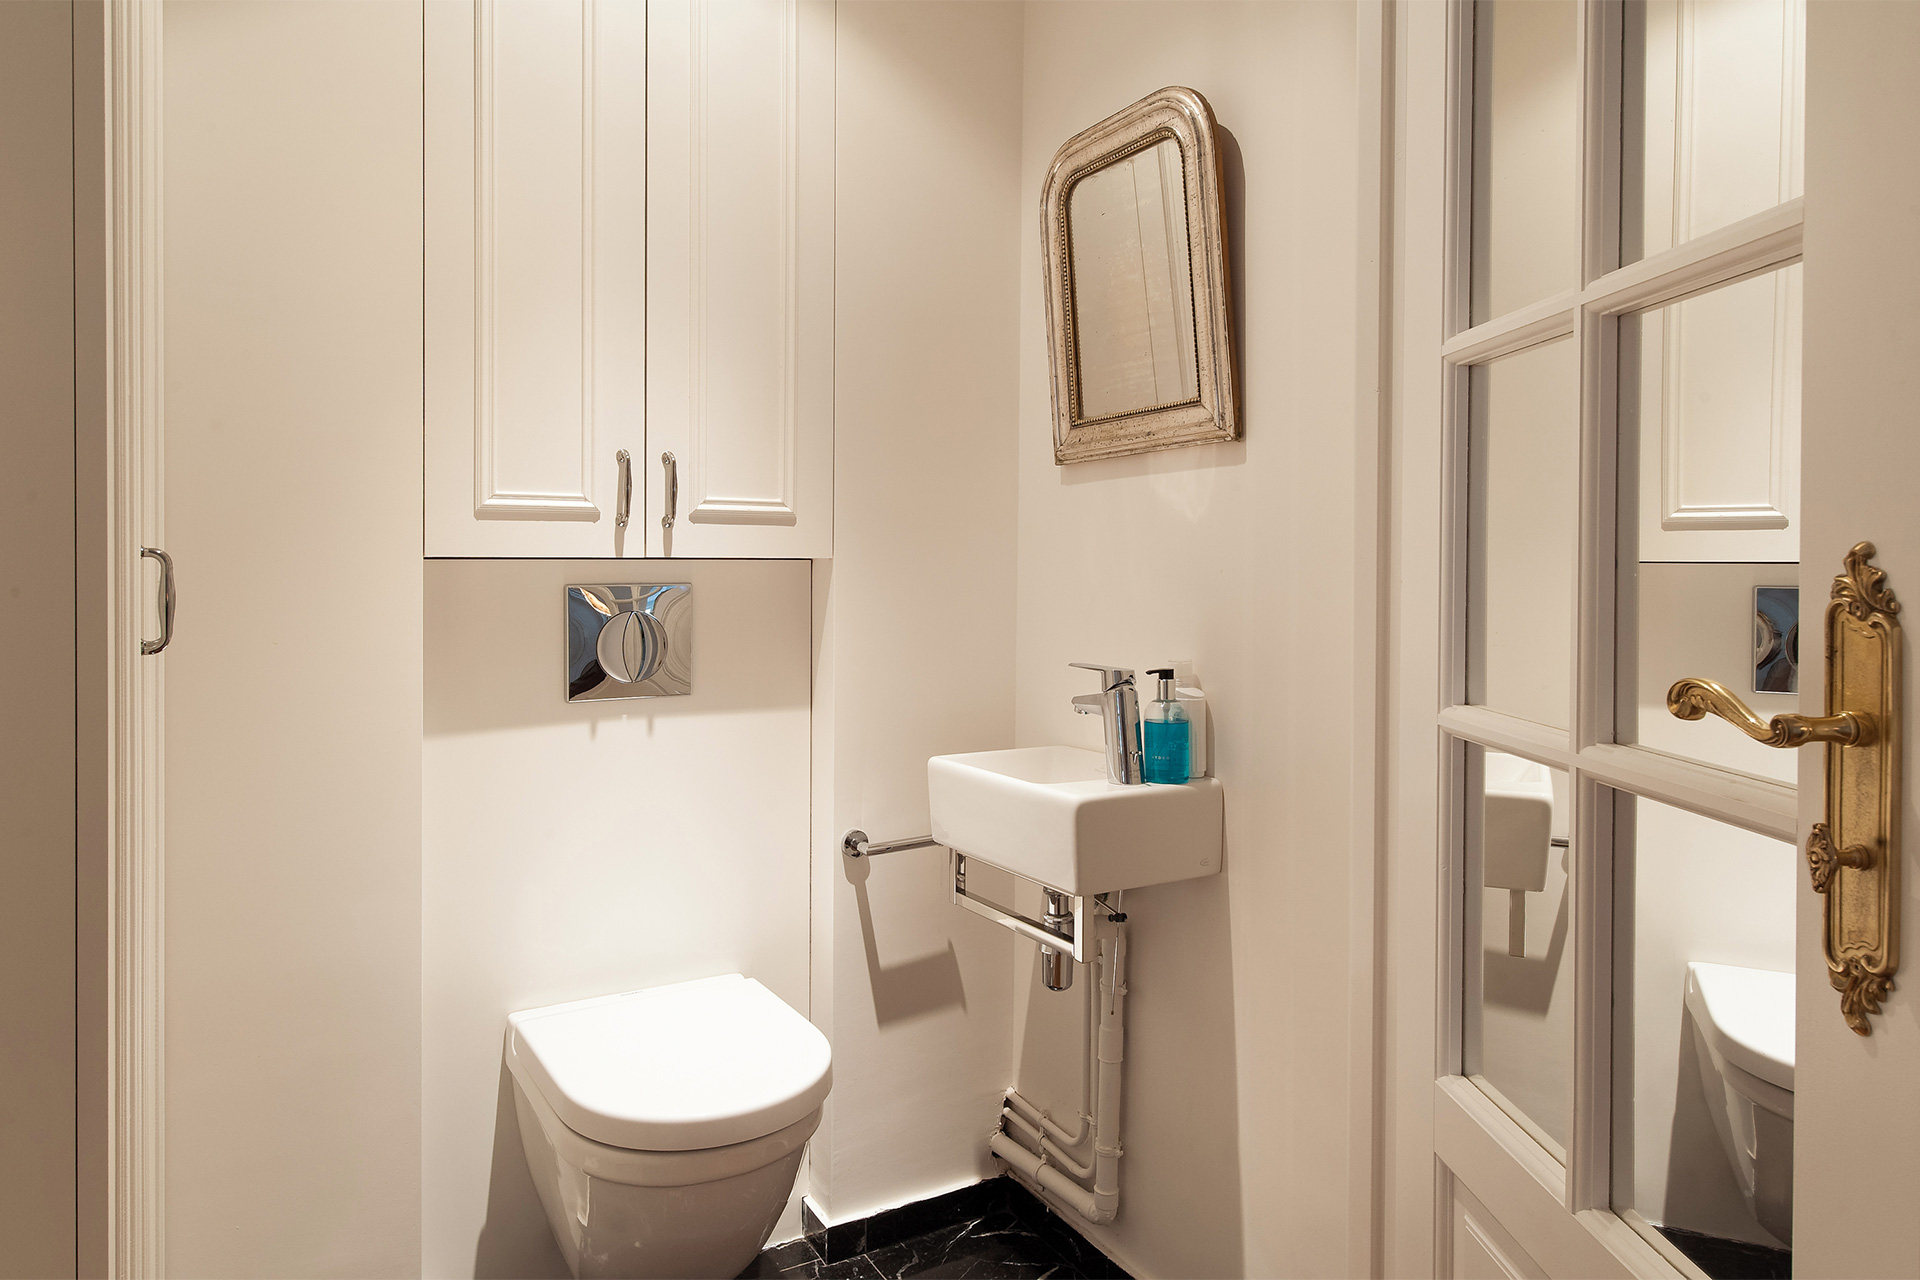 Half bath has a toilet and a sink in the Montagny vacation rental offered by Paris Perfect